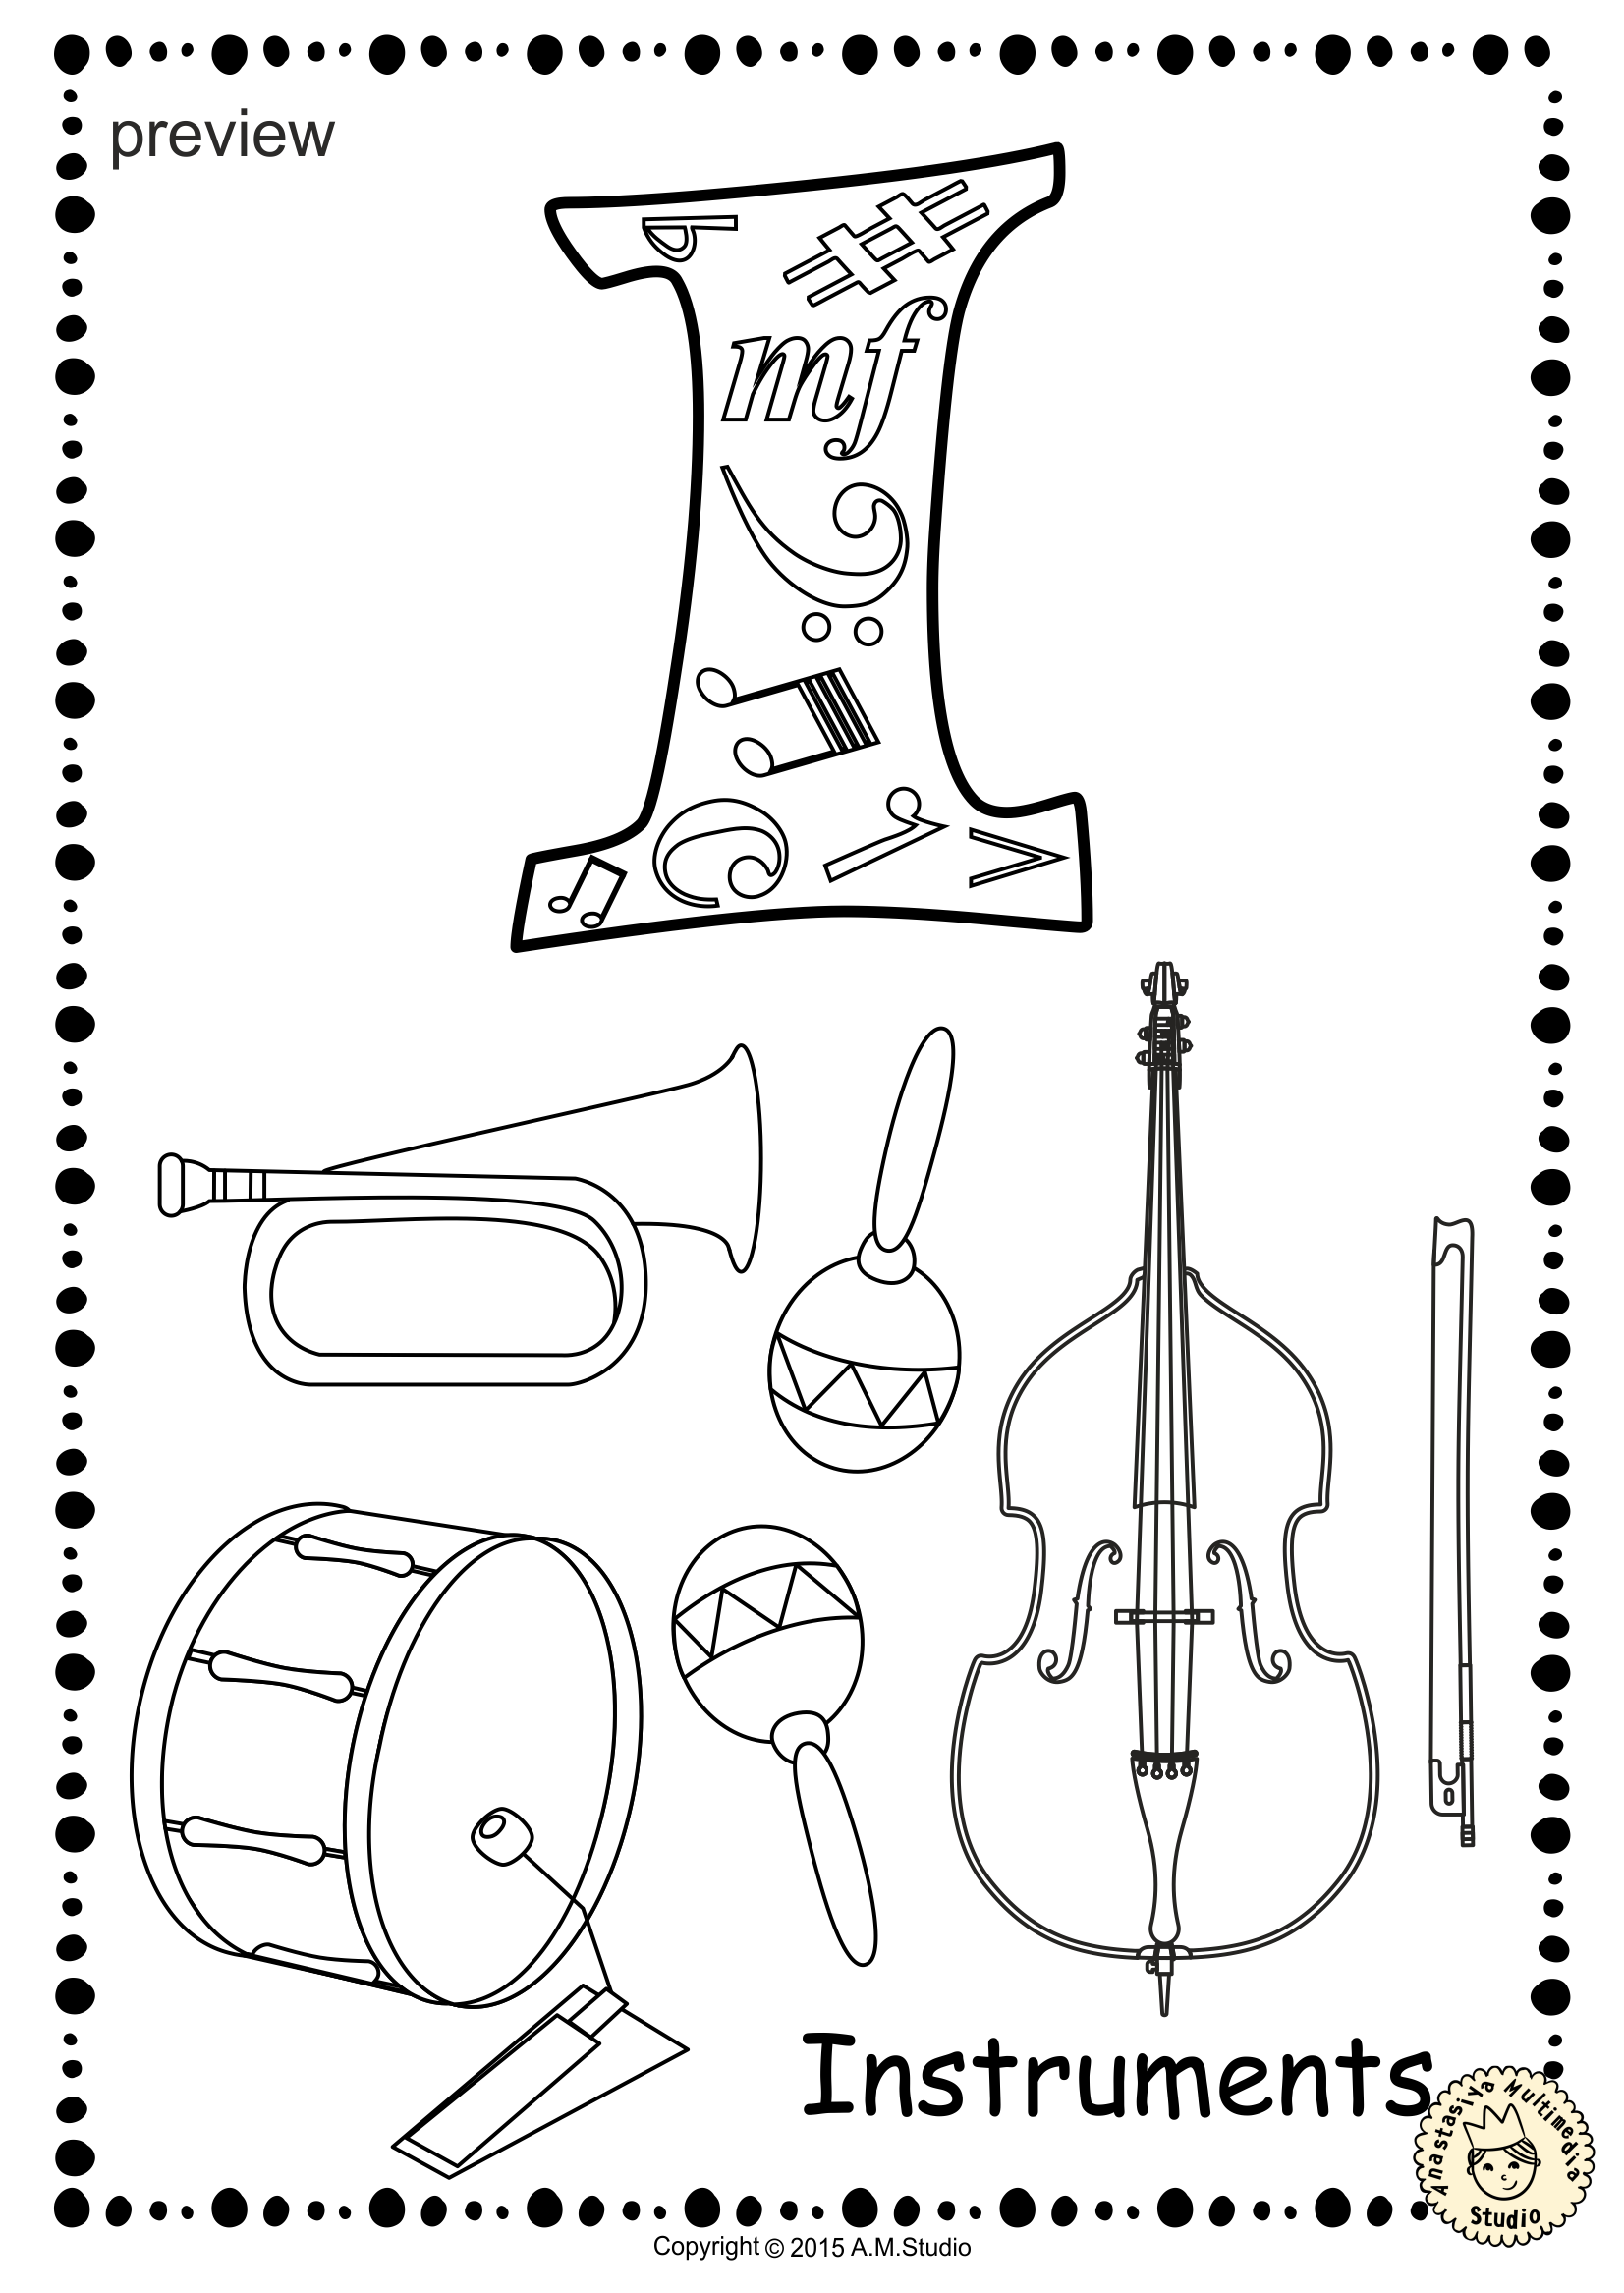 This file (in PDF form) contains 26 musical instrument coloring ...